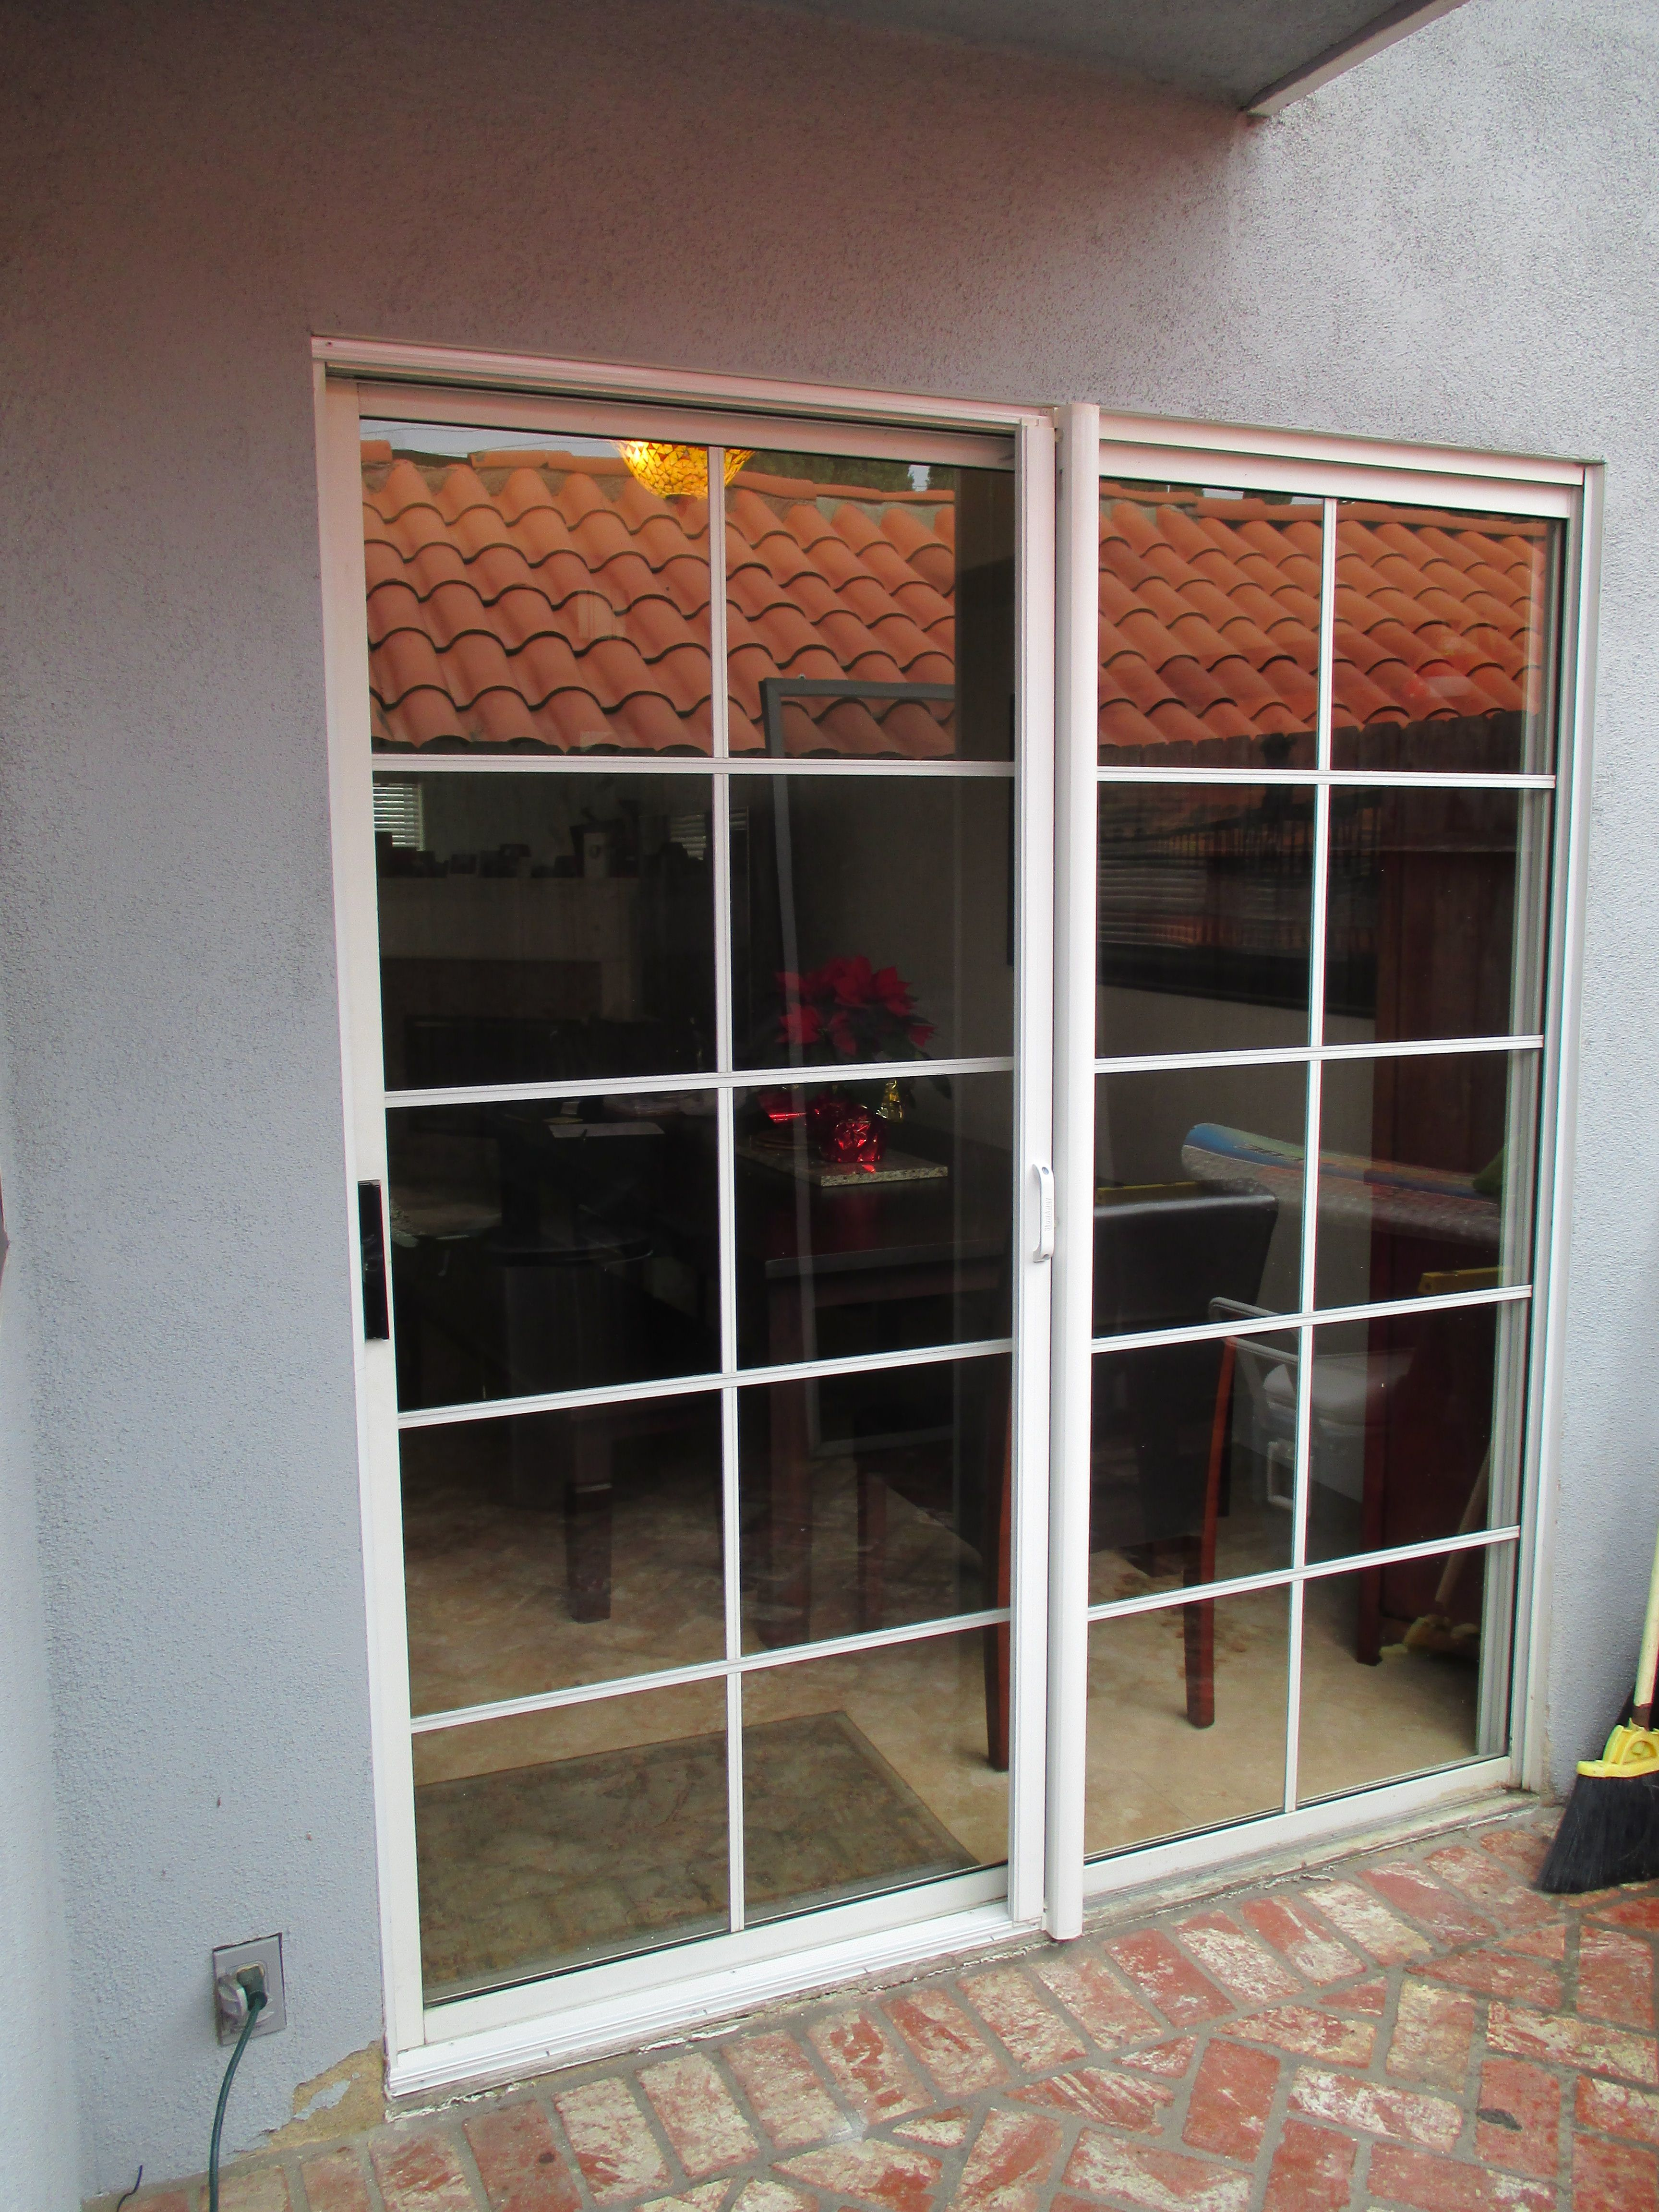 tn door brentwood retractable screen nashville wizard vistaview doors